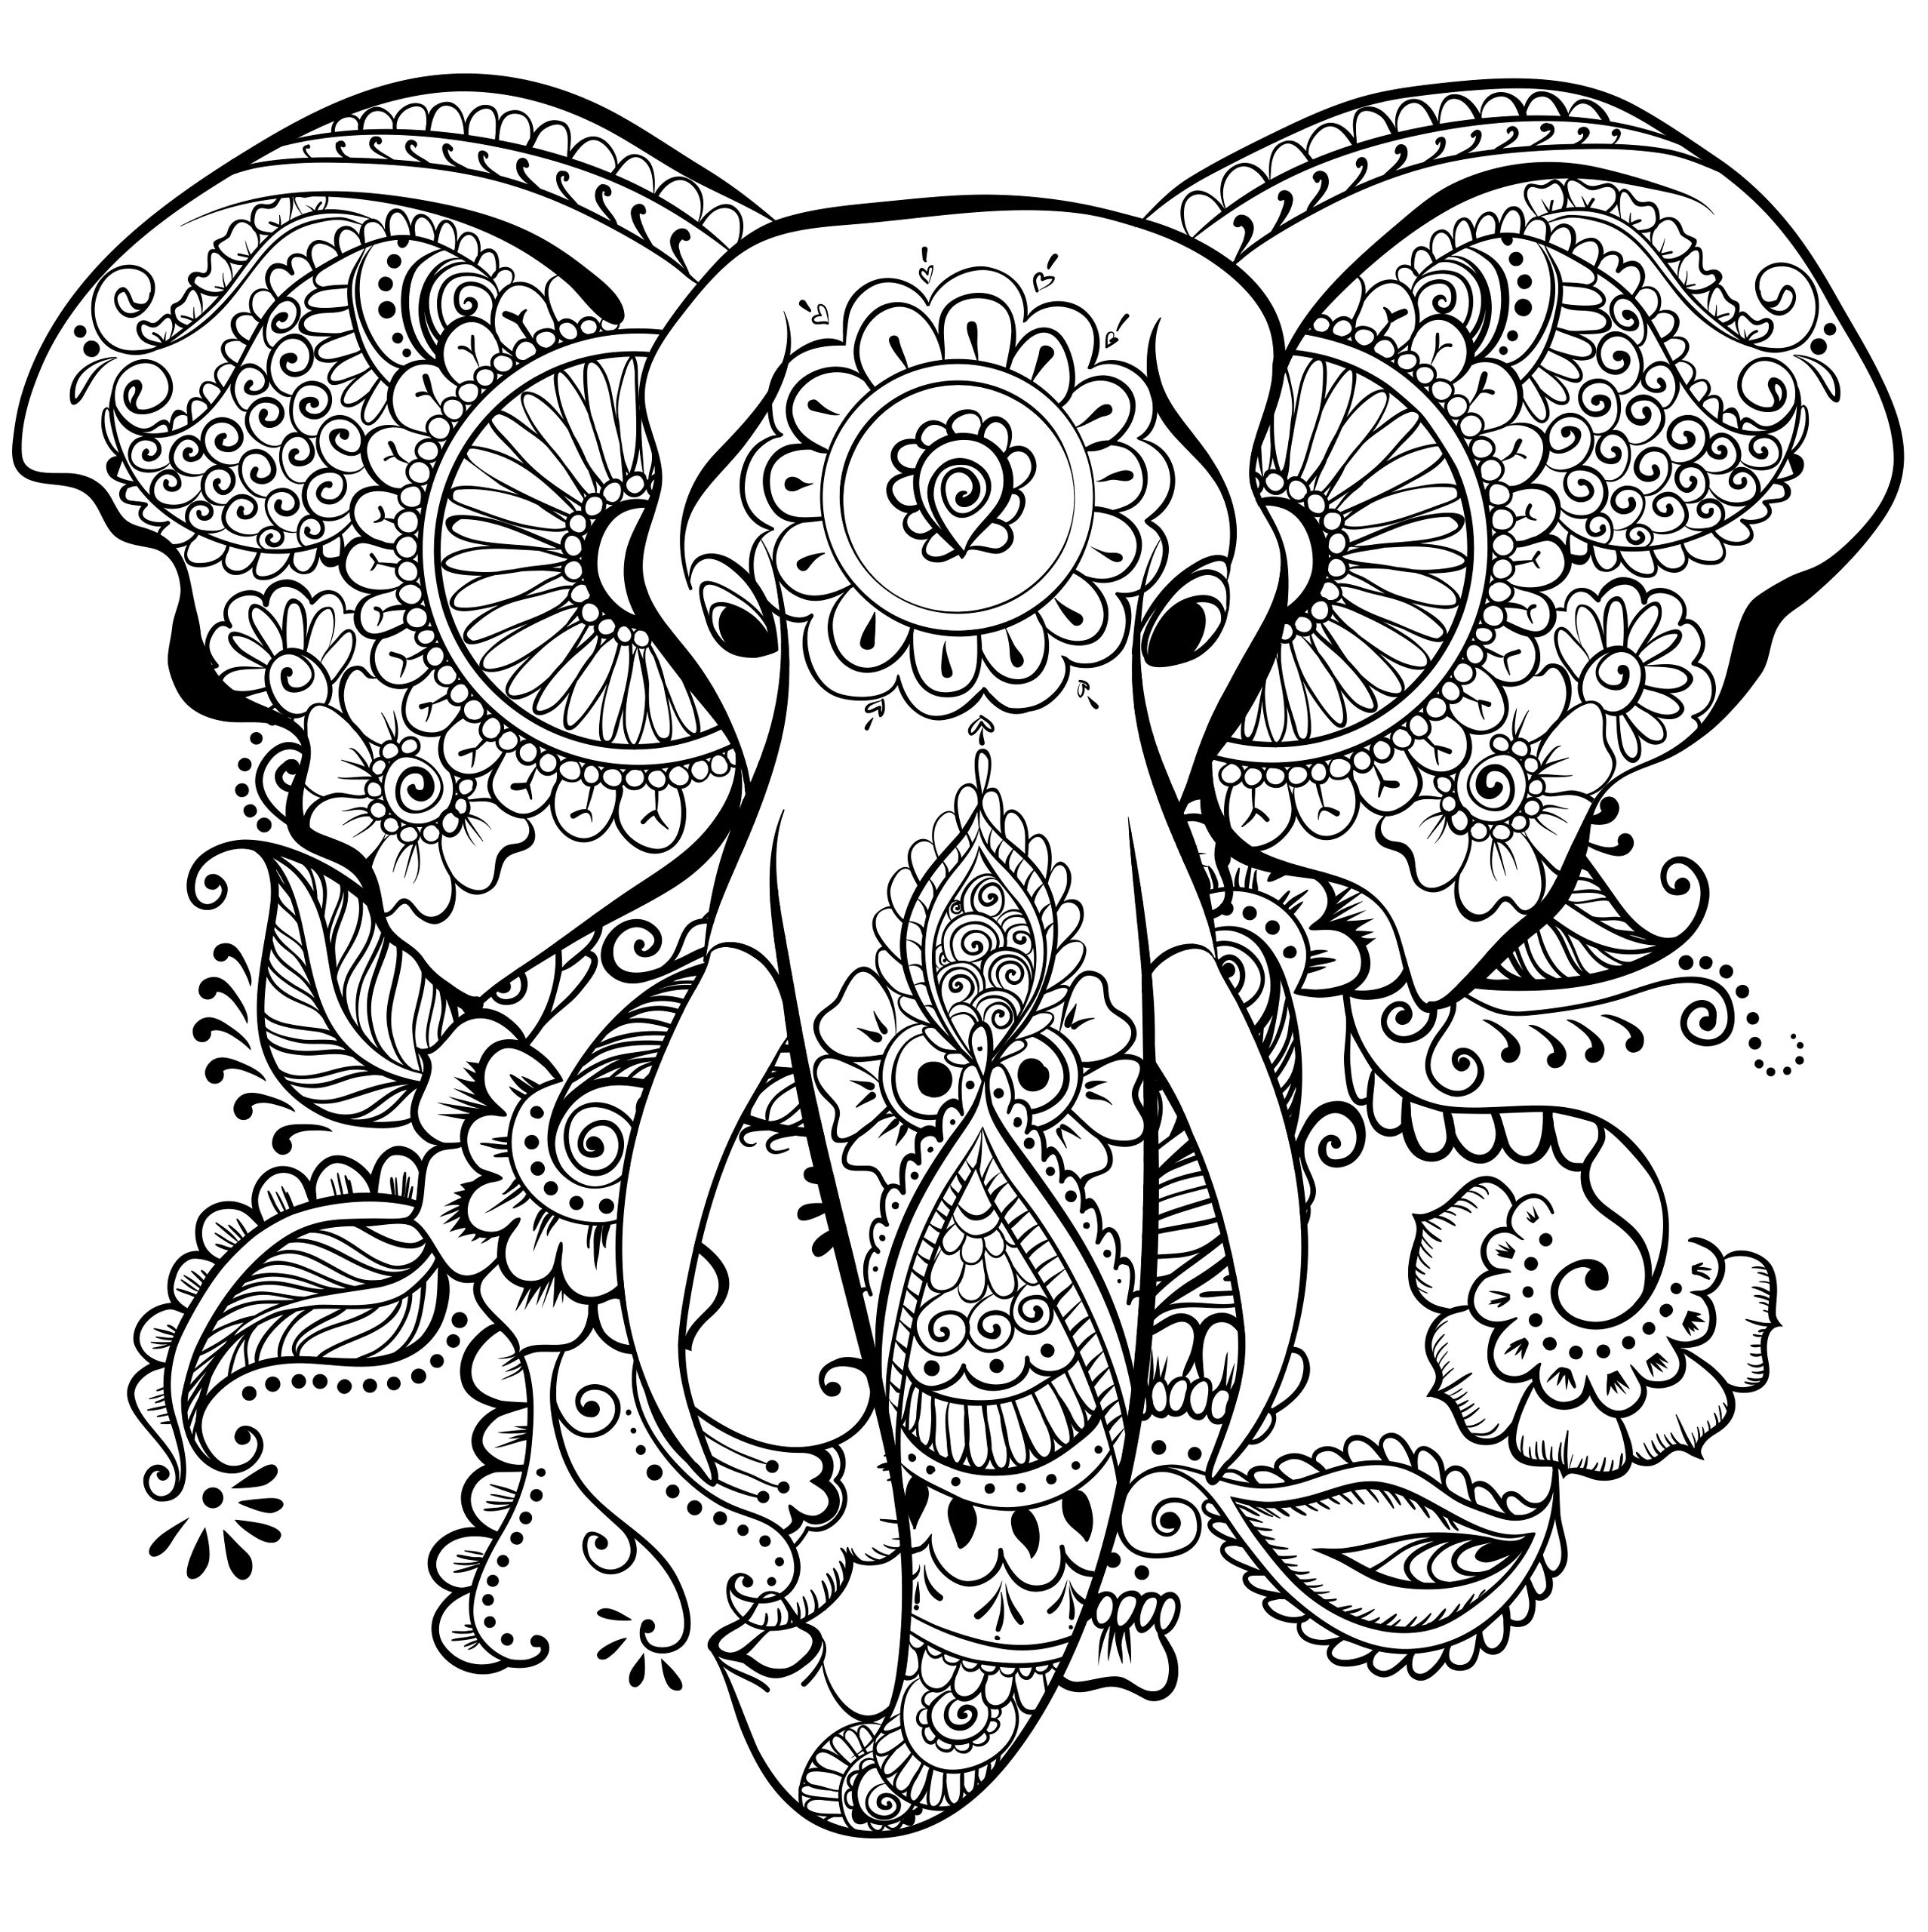 Elefant Ausmalbild Erwachsene | diy projects | Pinterest | Elefant ...